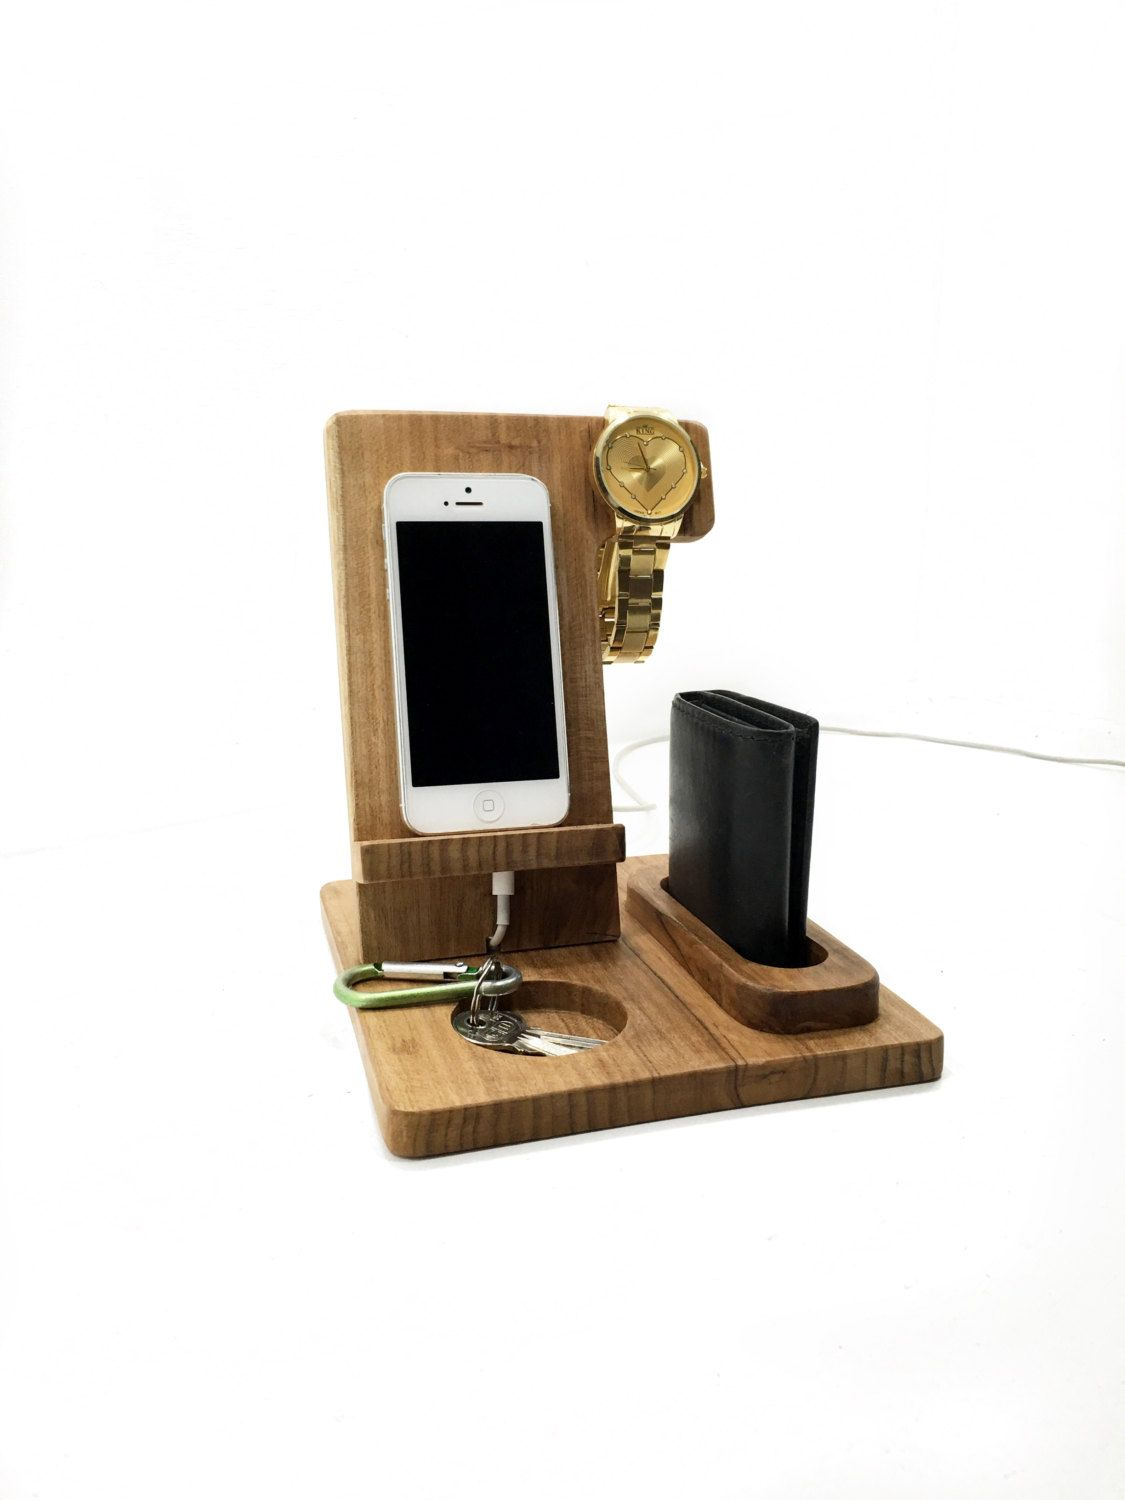 Dock Furniture Ideas Phone Docking Station Iphone 6 Dock 26 00 Usd By